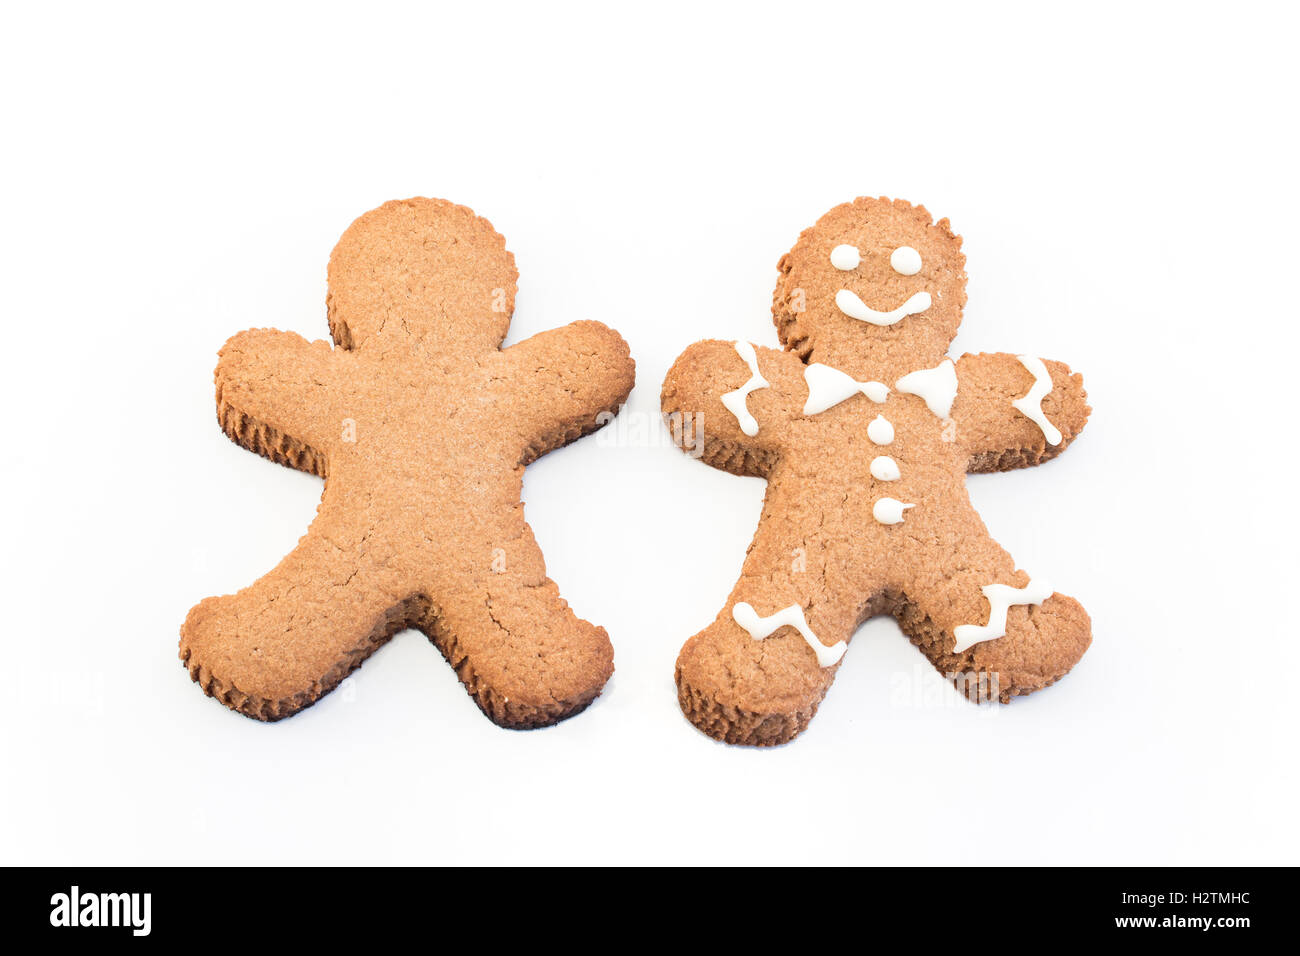 Concept of Personality, Gingerbread  Man Cookies. - Stock Image